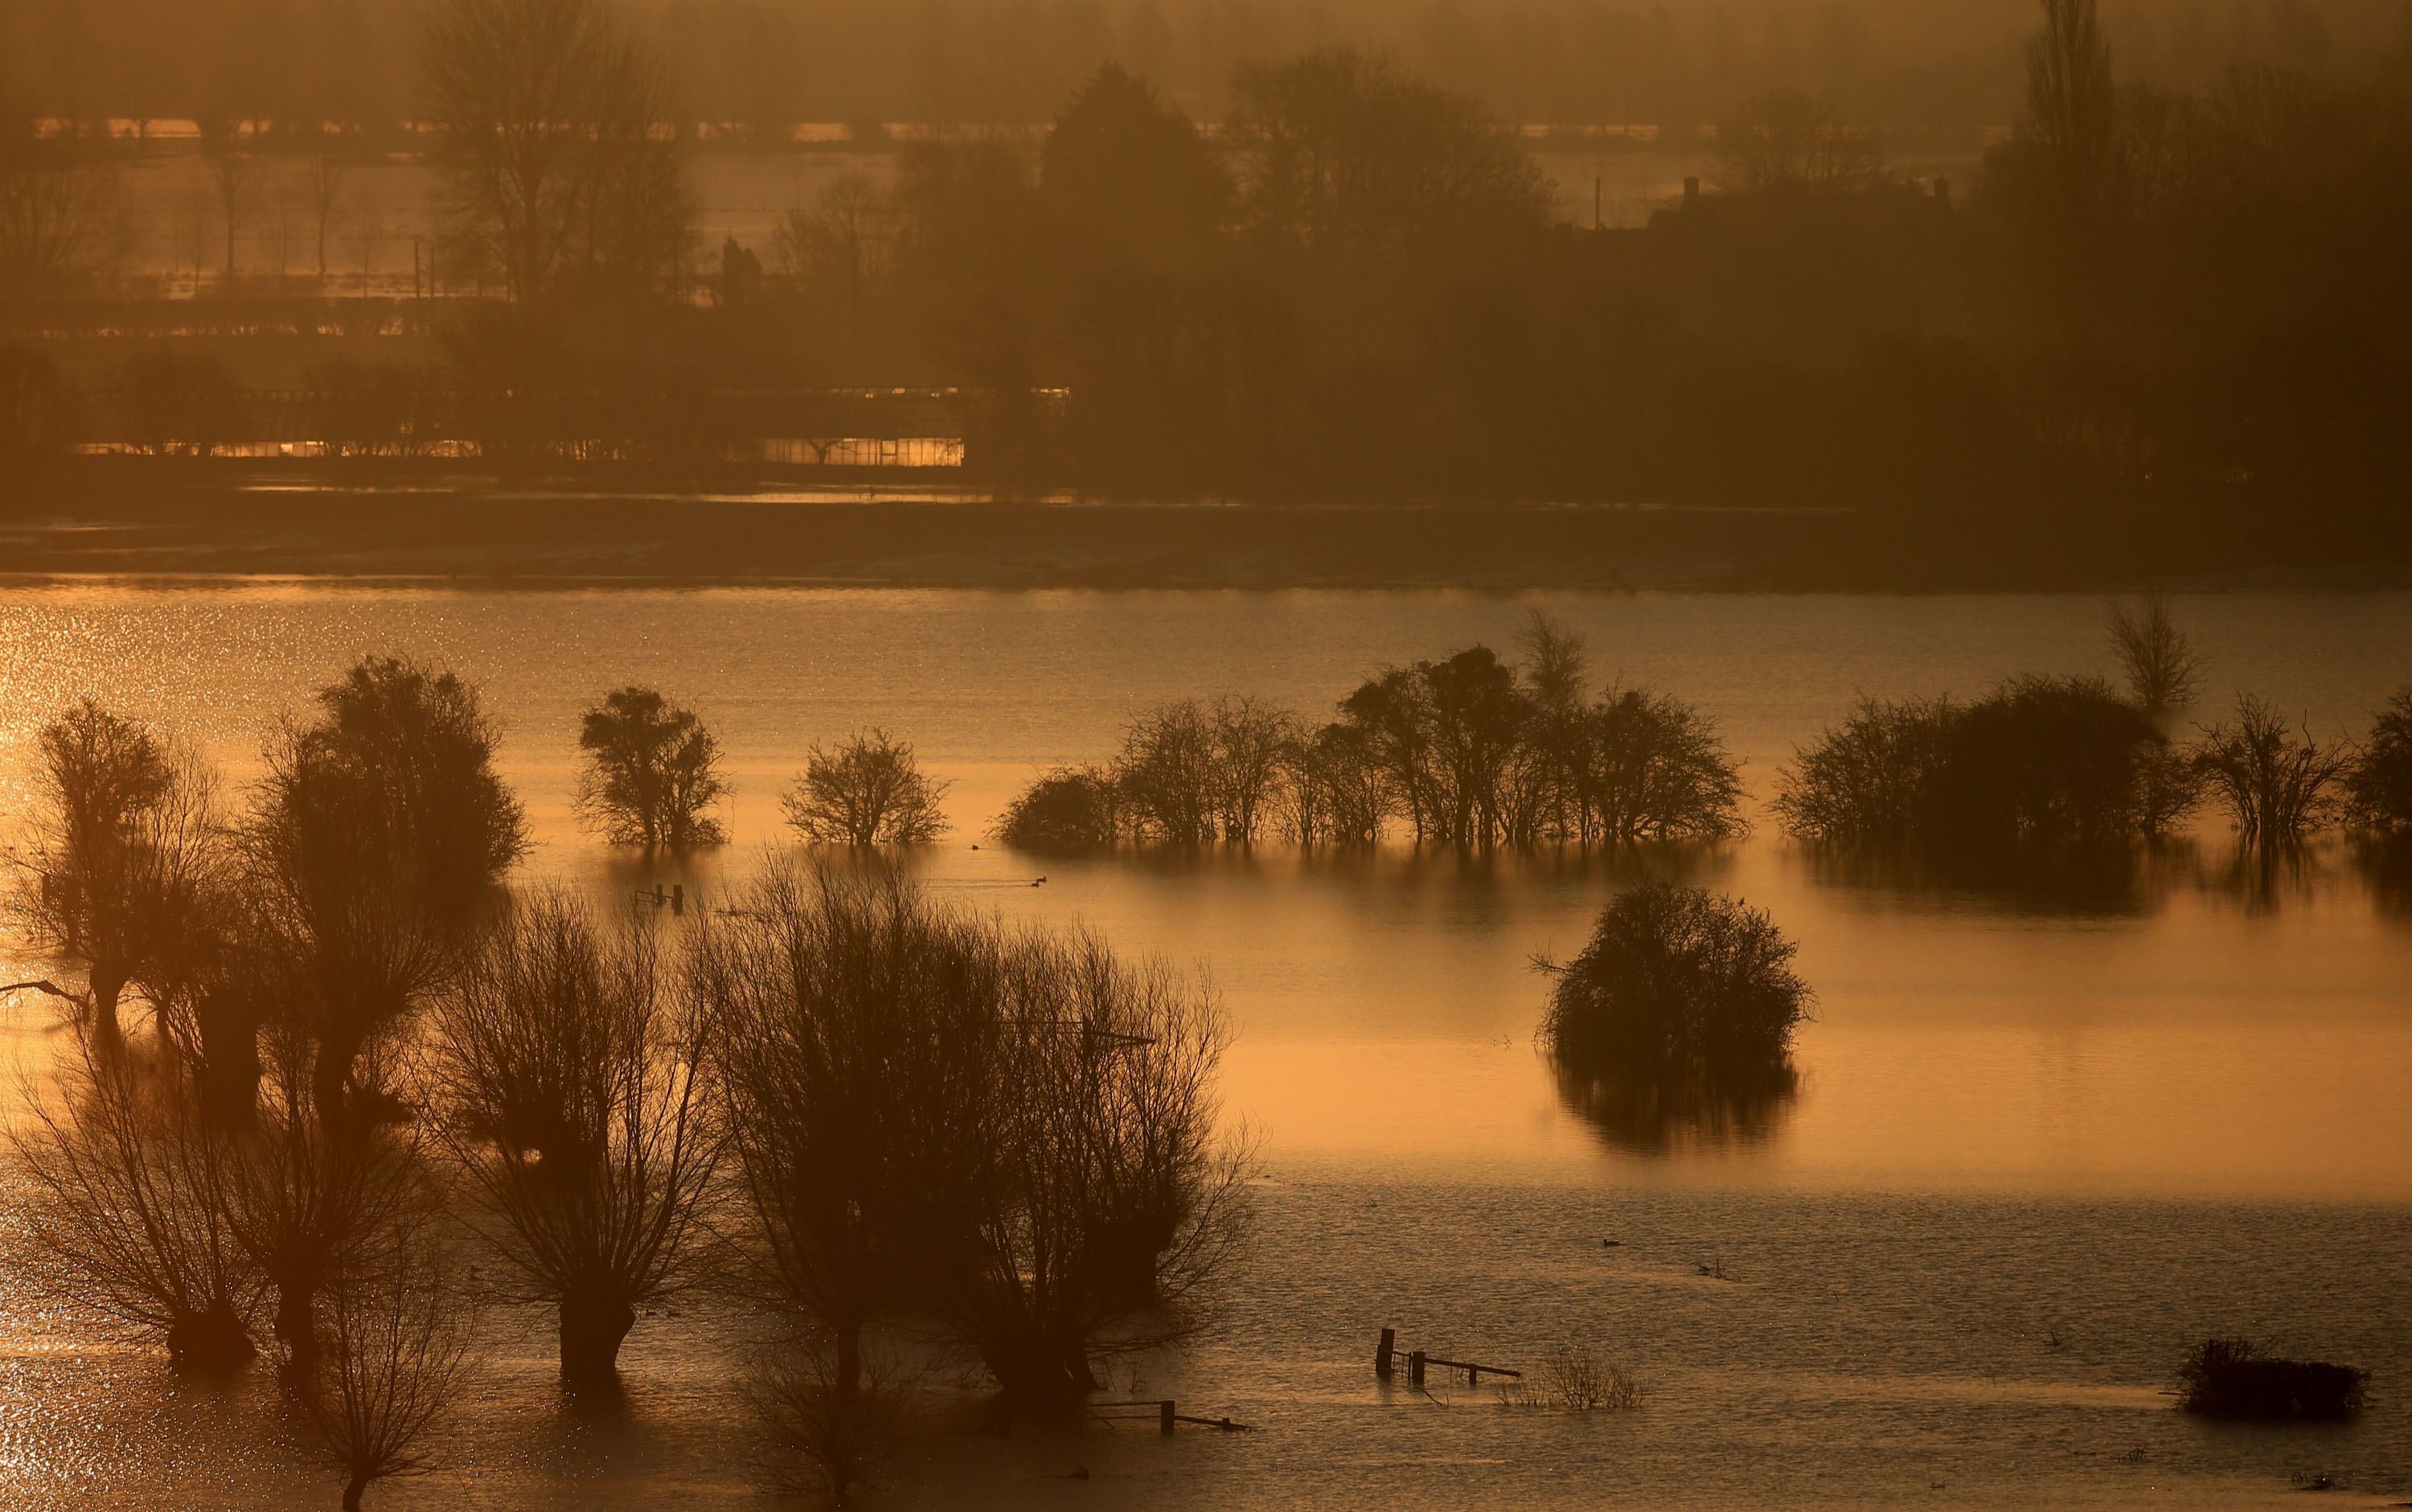 A taste of things to come? Britain has been identified as one of the countries most at risk from flooding